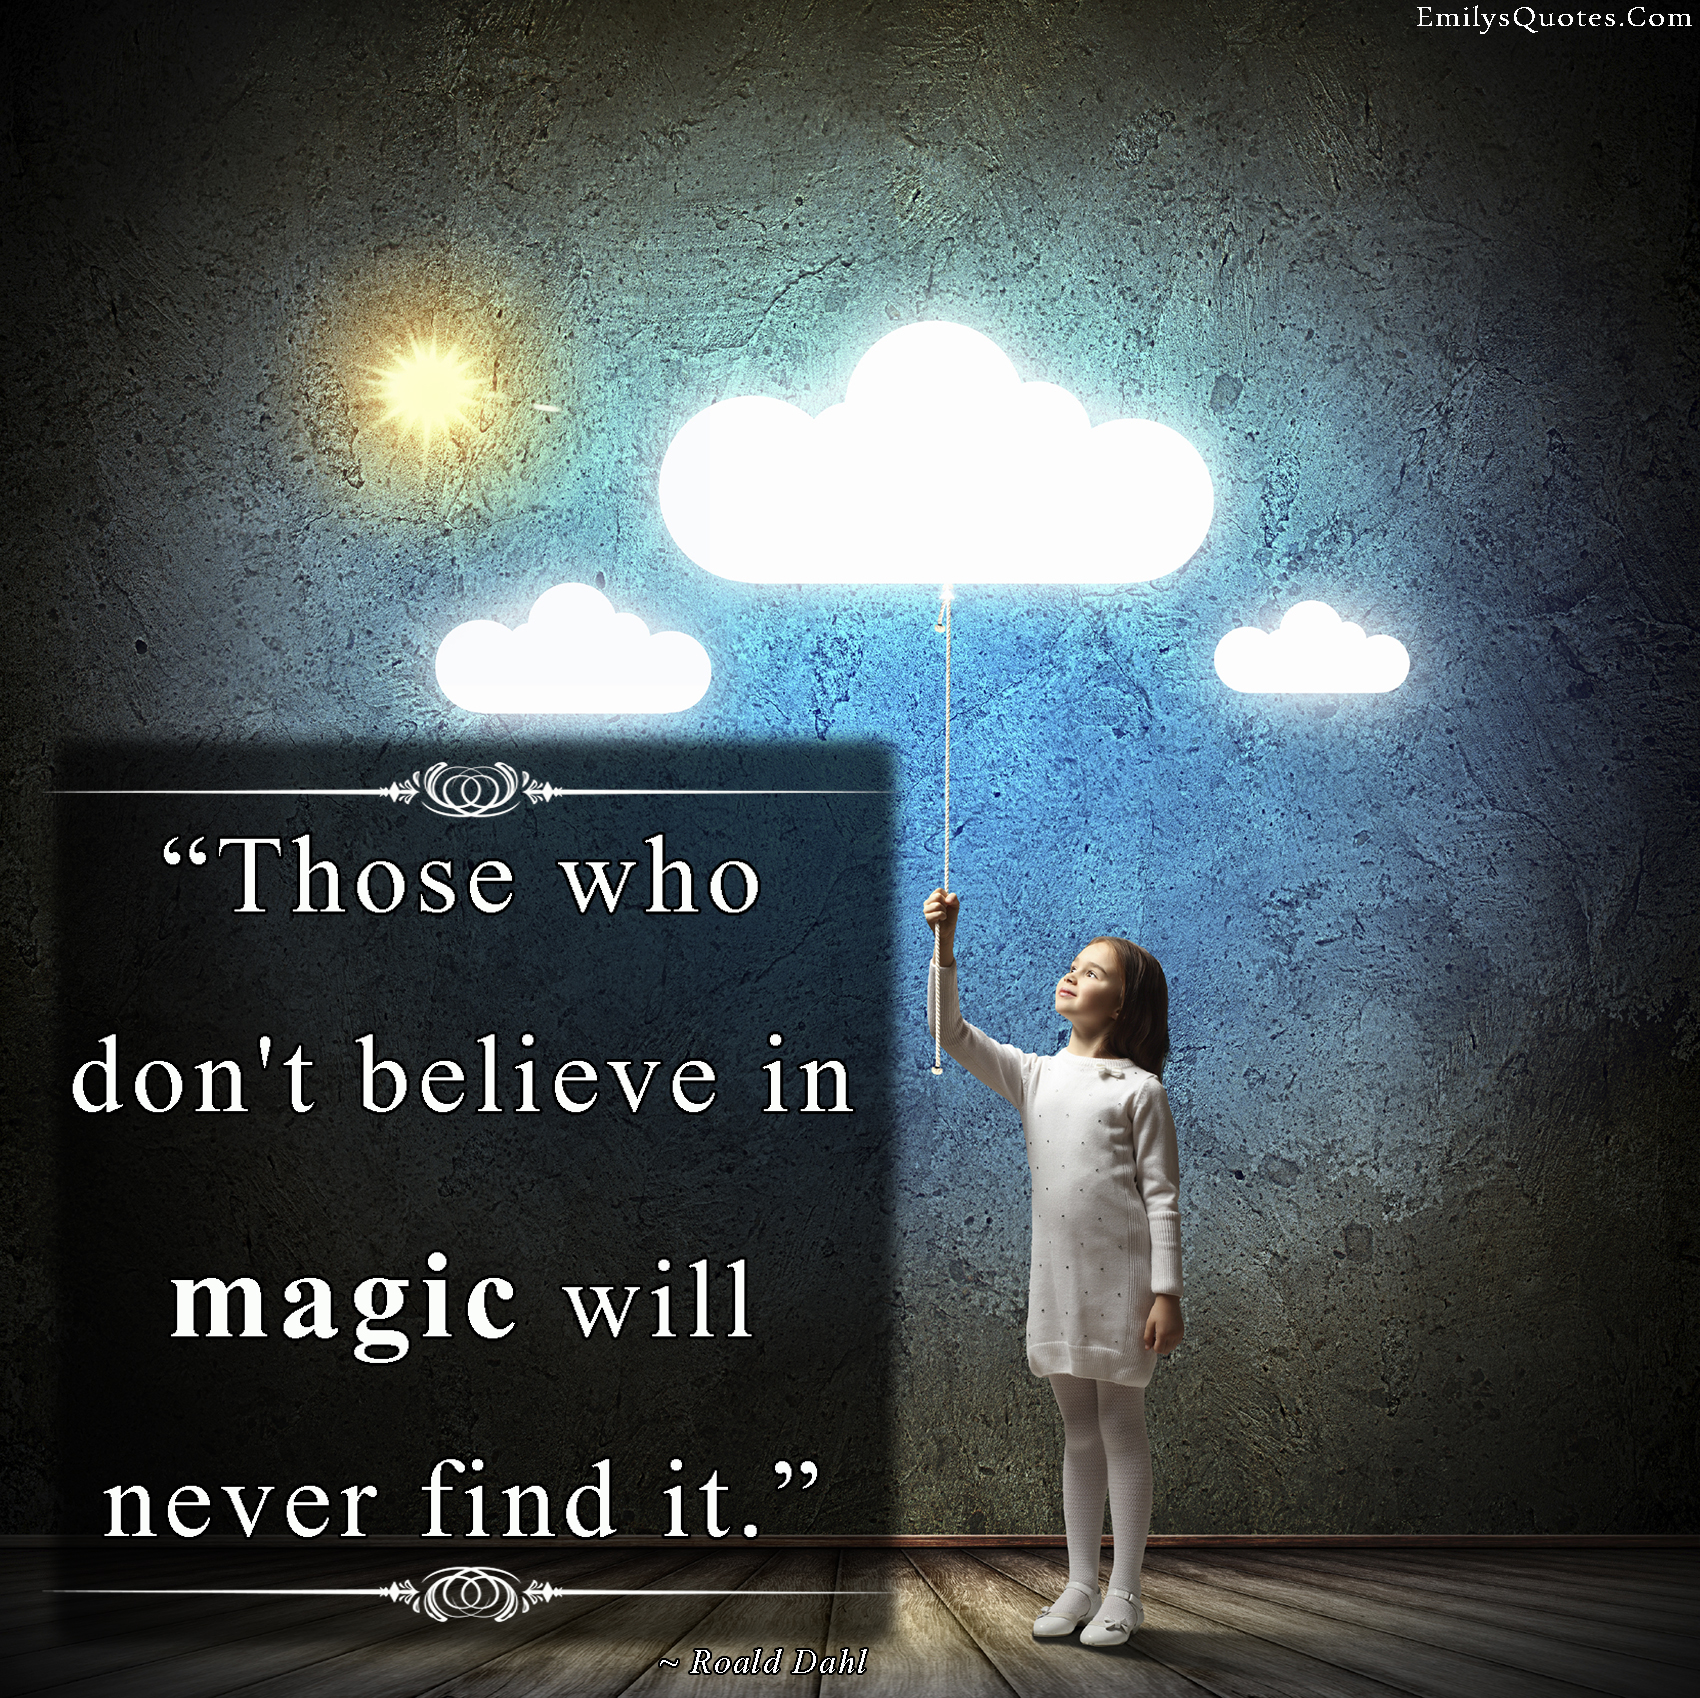 EmilysQuotes.Com - believe, magic, find, inspirational,  Roald Dahl